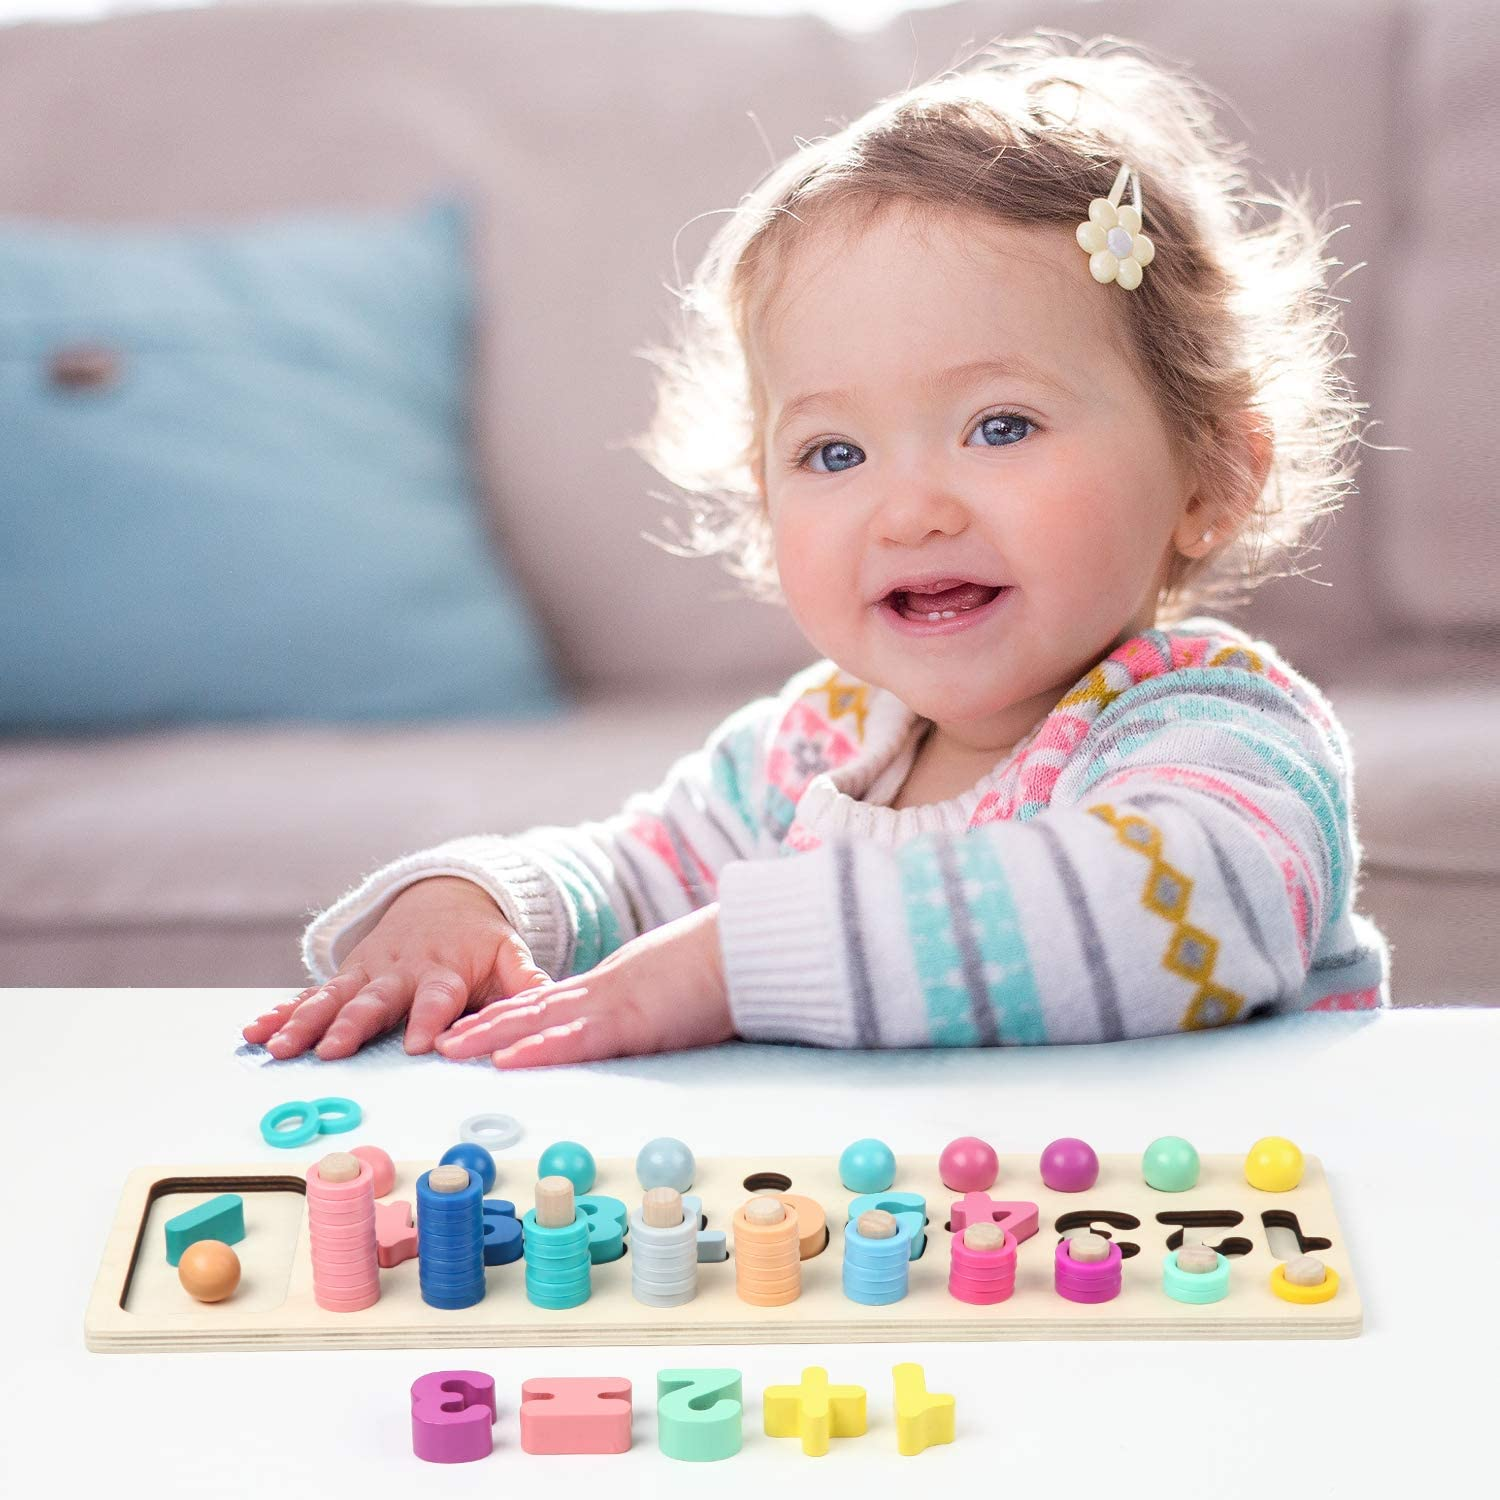 Baby Math Learning Toy-Wooden Number Puzzle Big Size Color Sorting Montessori Toys for Toddlers-Counting Game for Age 3 4 5 Year olds Kids Preschool Education Stacking Blocks